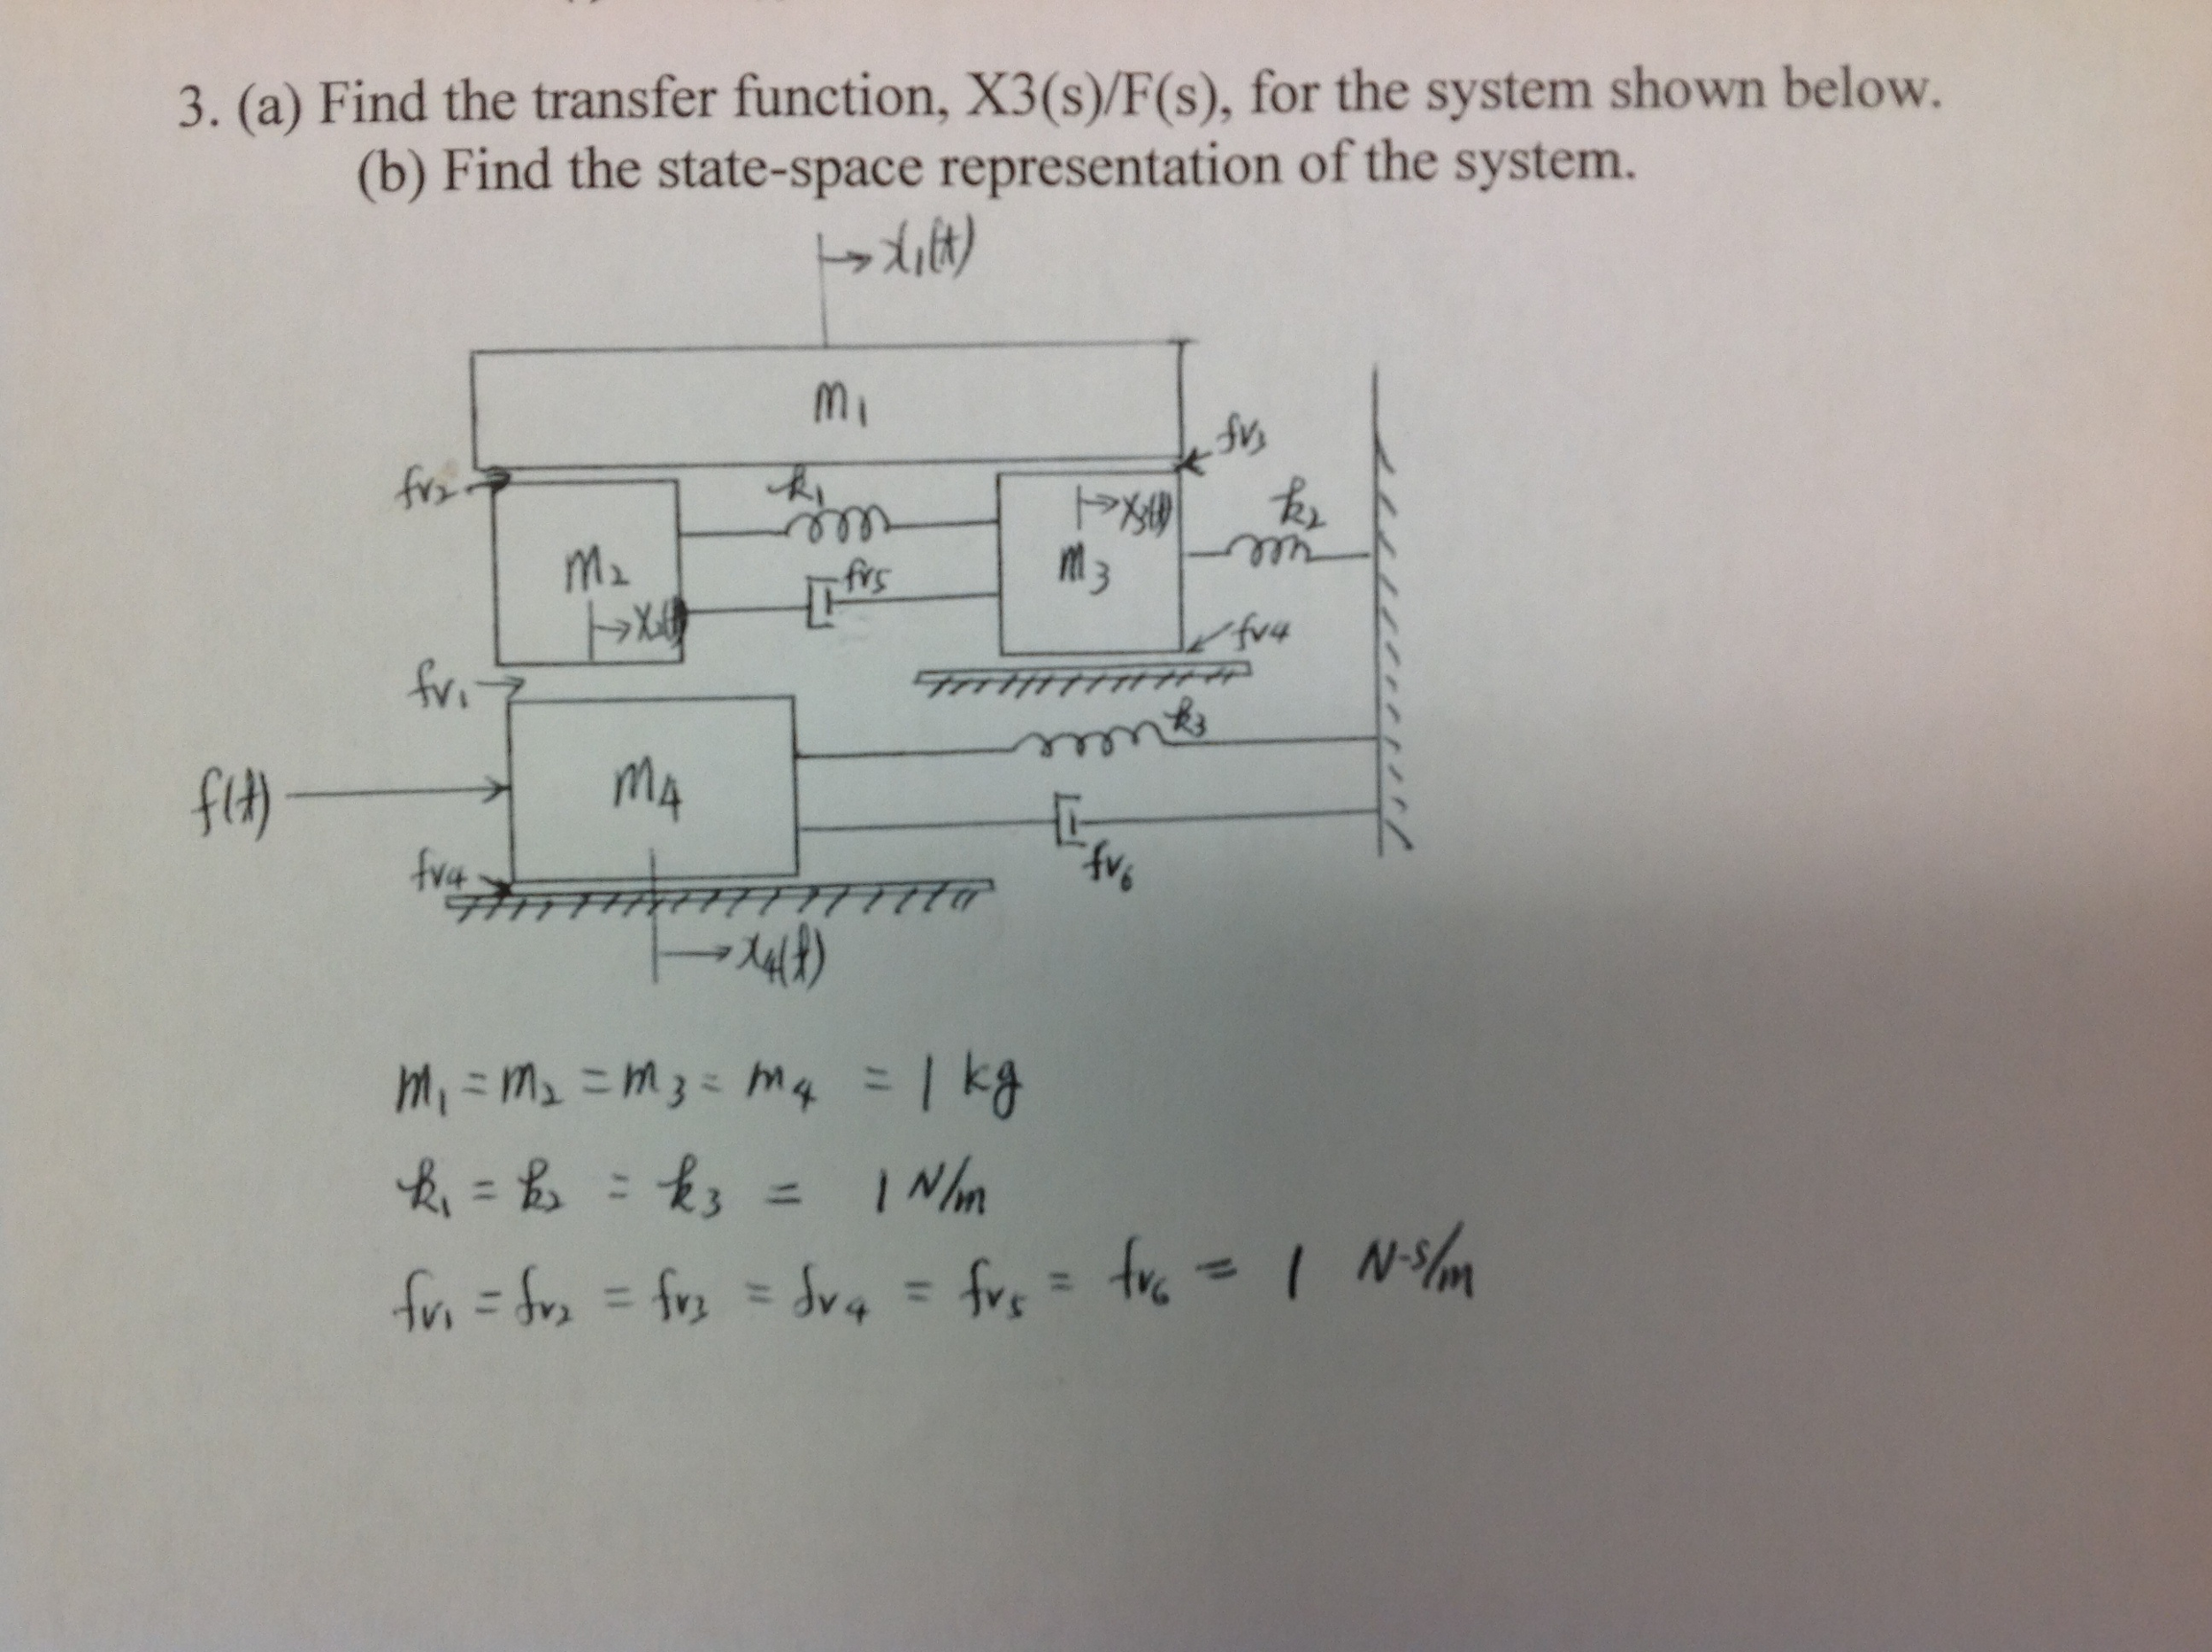 Find the transfer function, X3(s)/F(s), for the sy